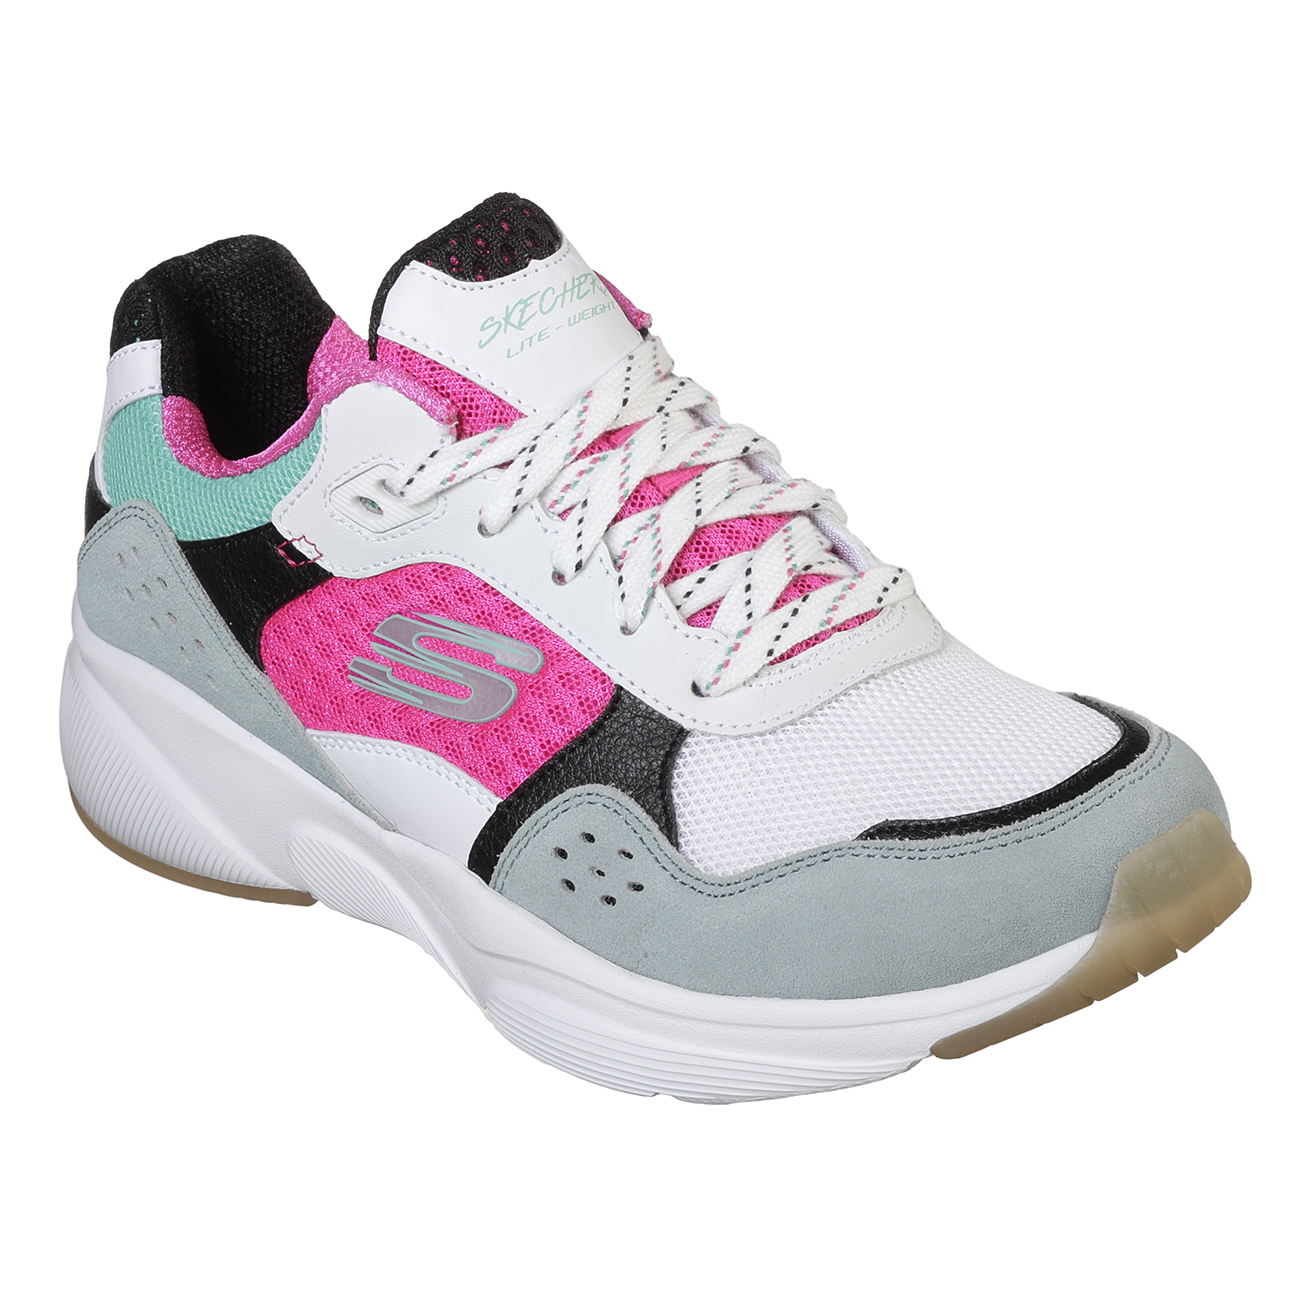 Kids Girls Skechers Meridian Charted